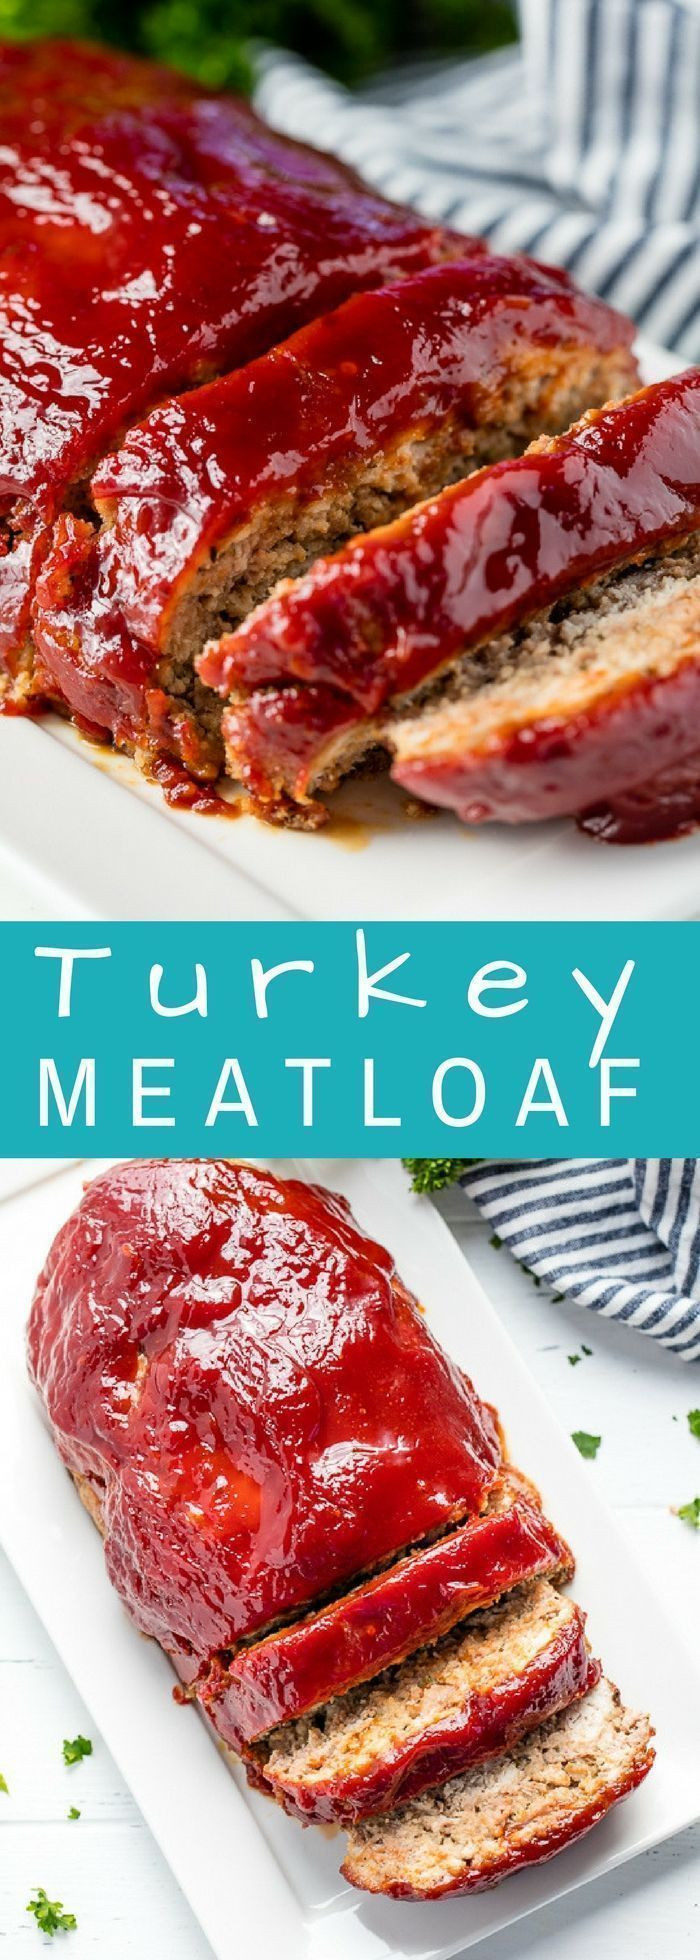 Easy Healthy Meatloaf Recipes  Best 25 Meatloaf recipes ideas on Pinterest